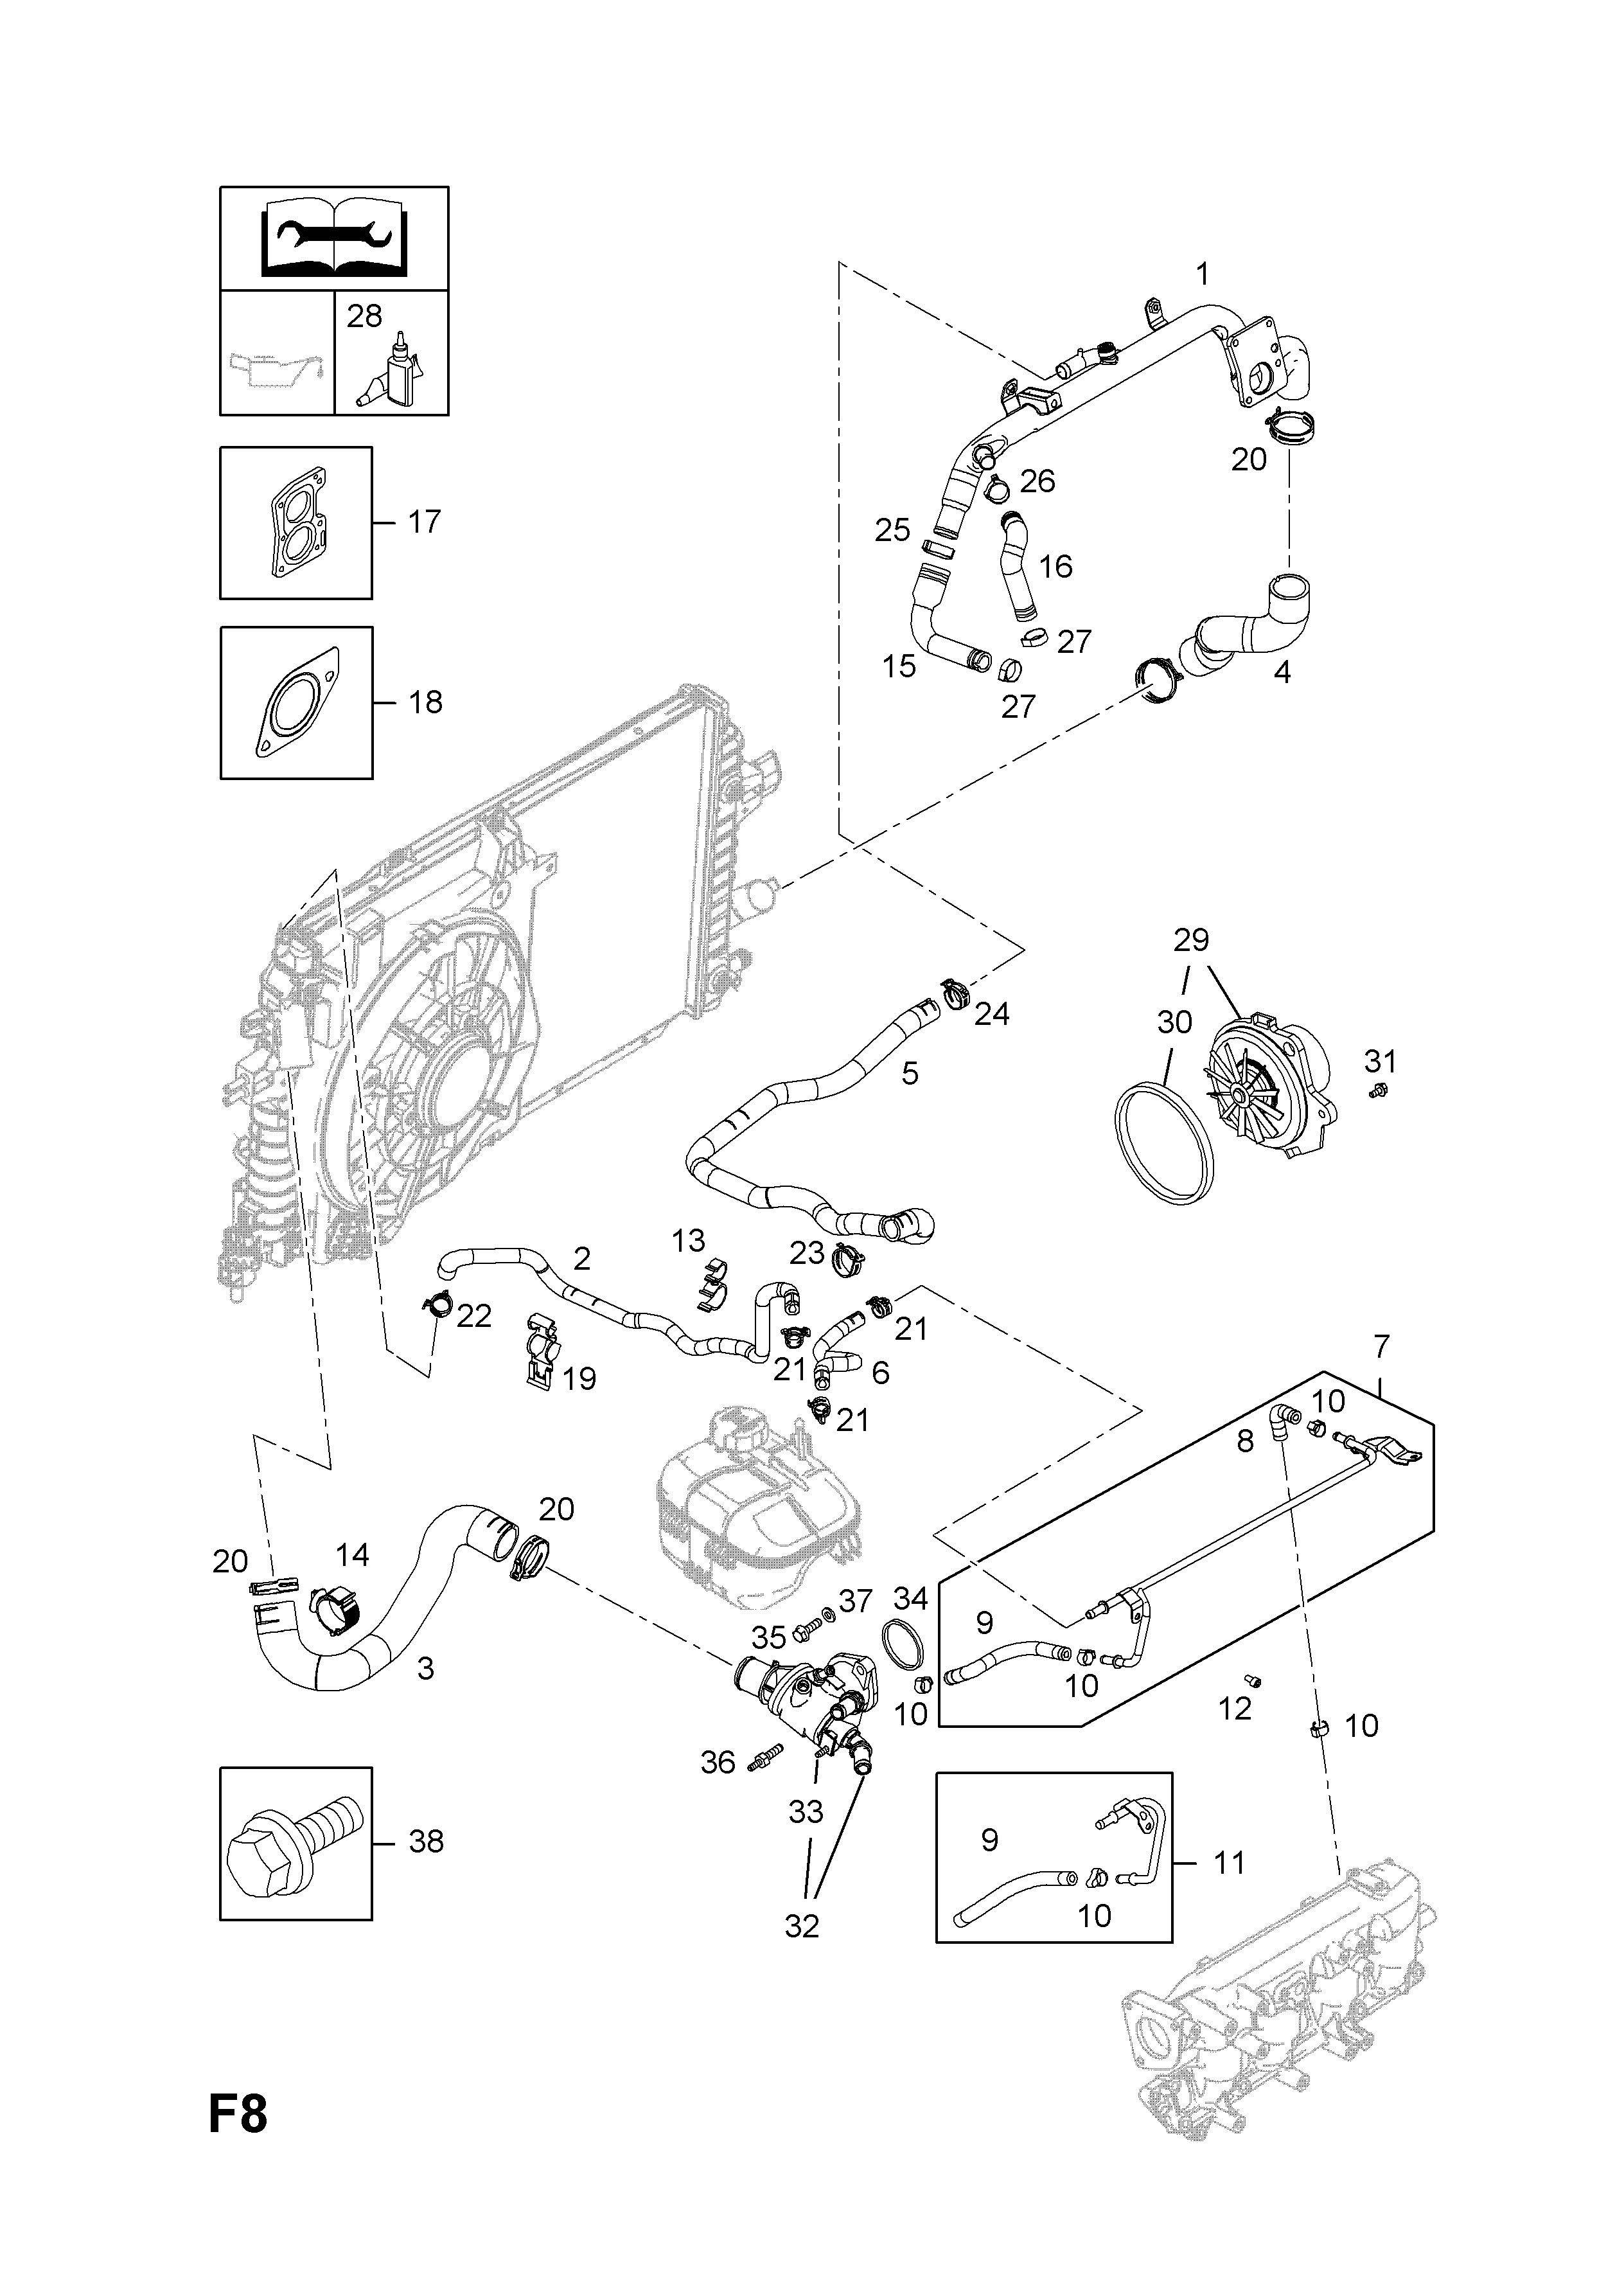 Opel Engine Cooling Diagram Zafira B 2005 F 29z19dtllppz19dtlpm List Of Parts